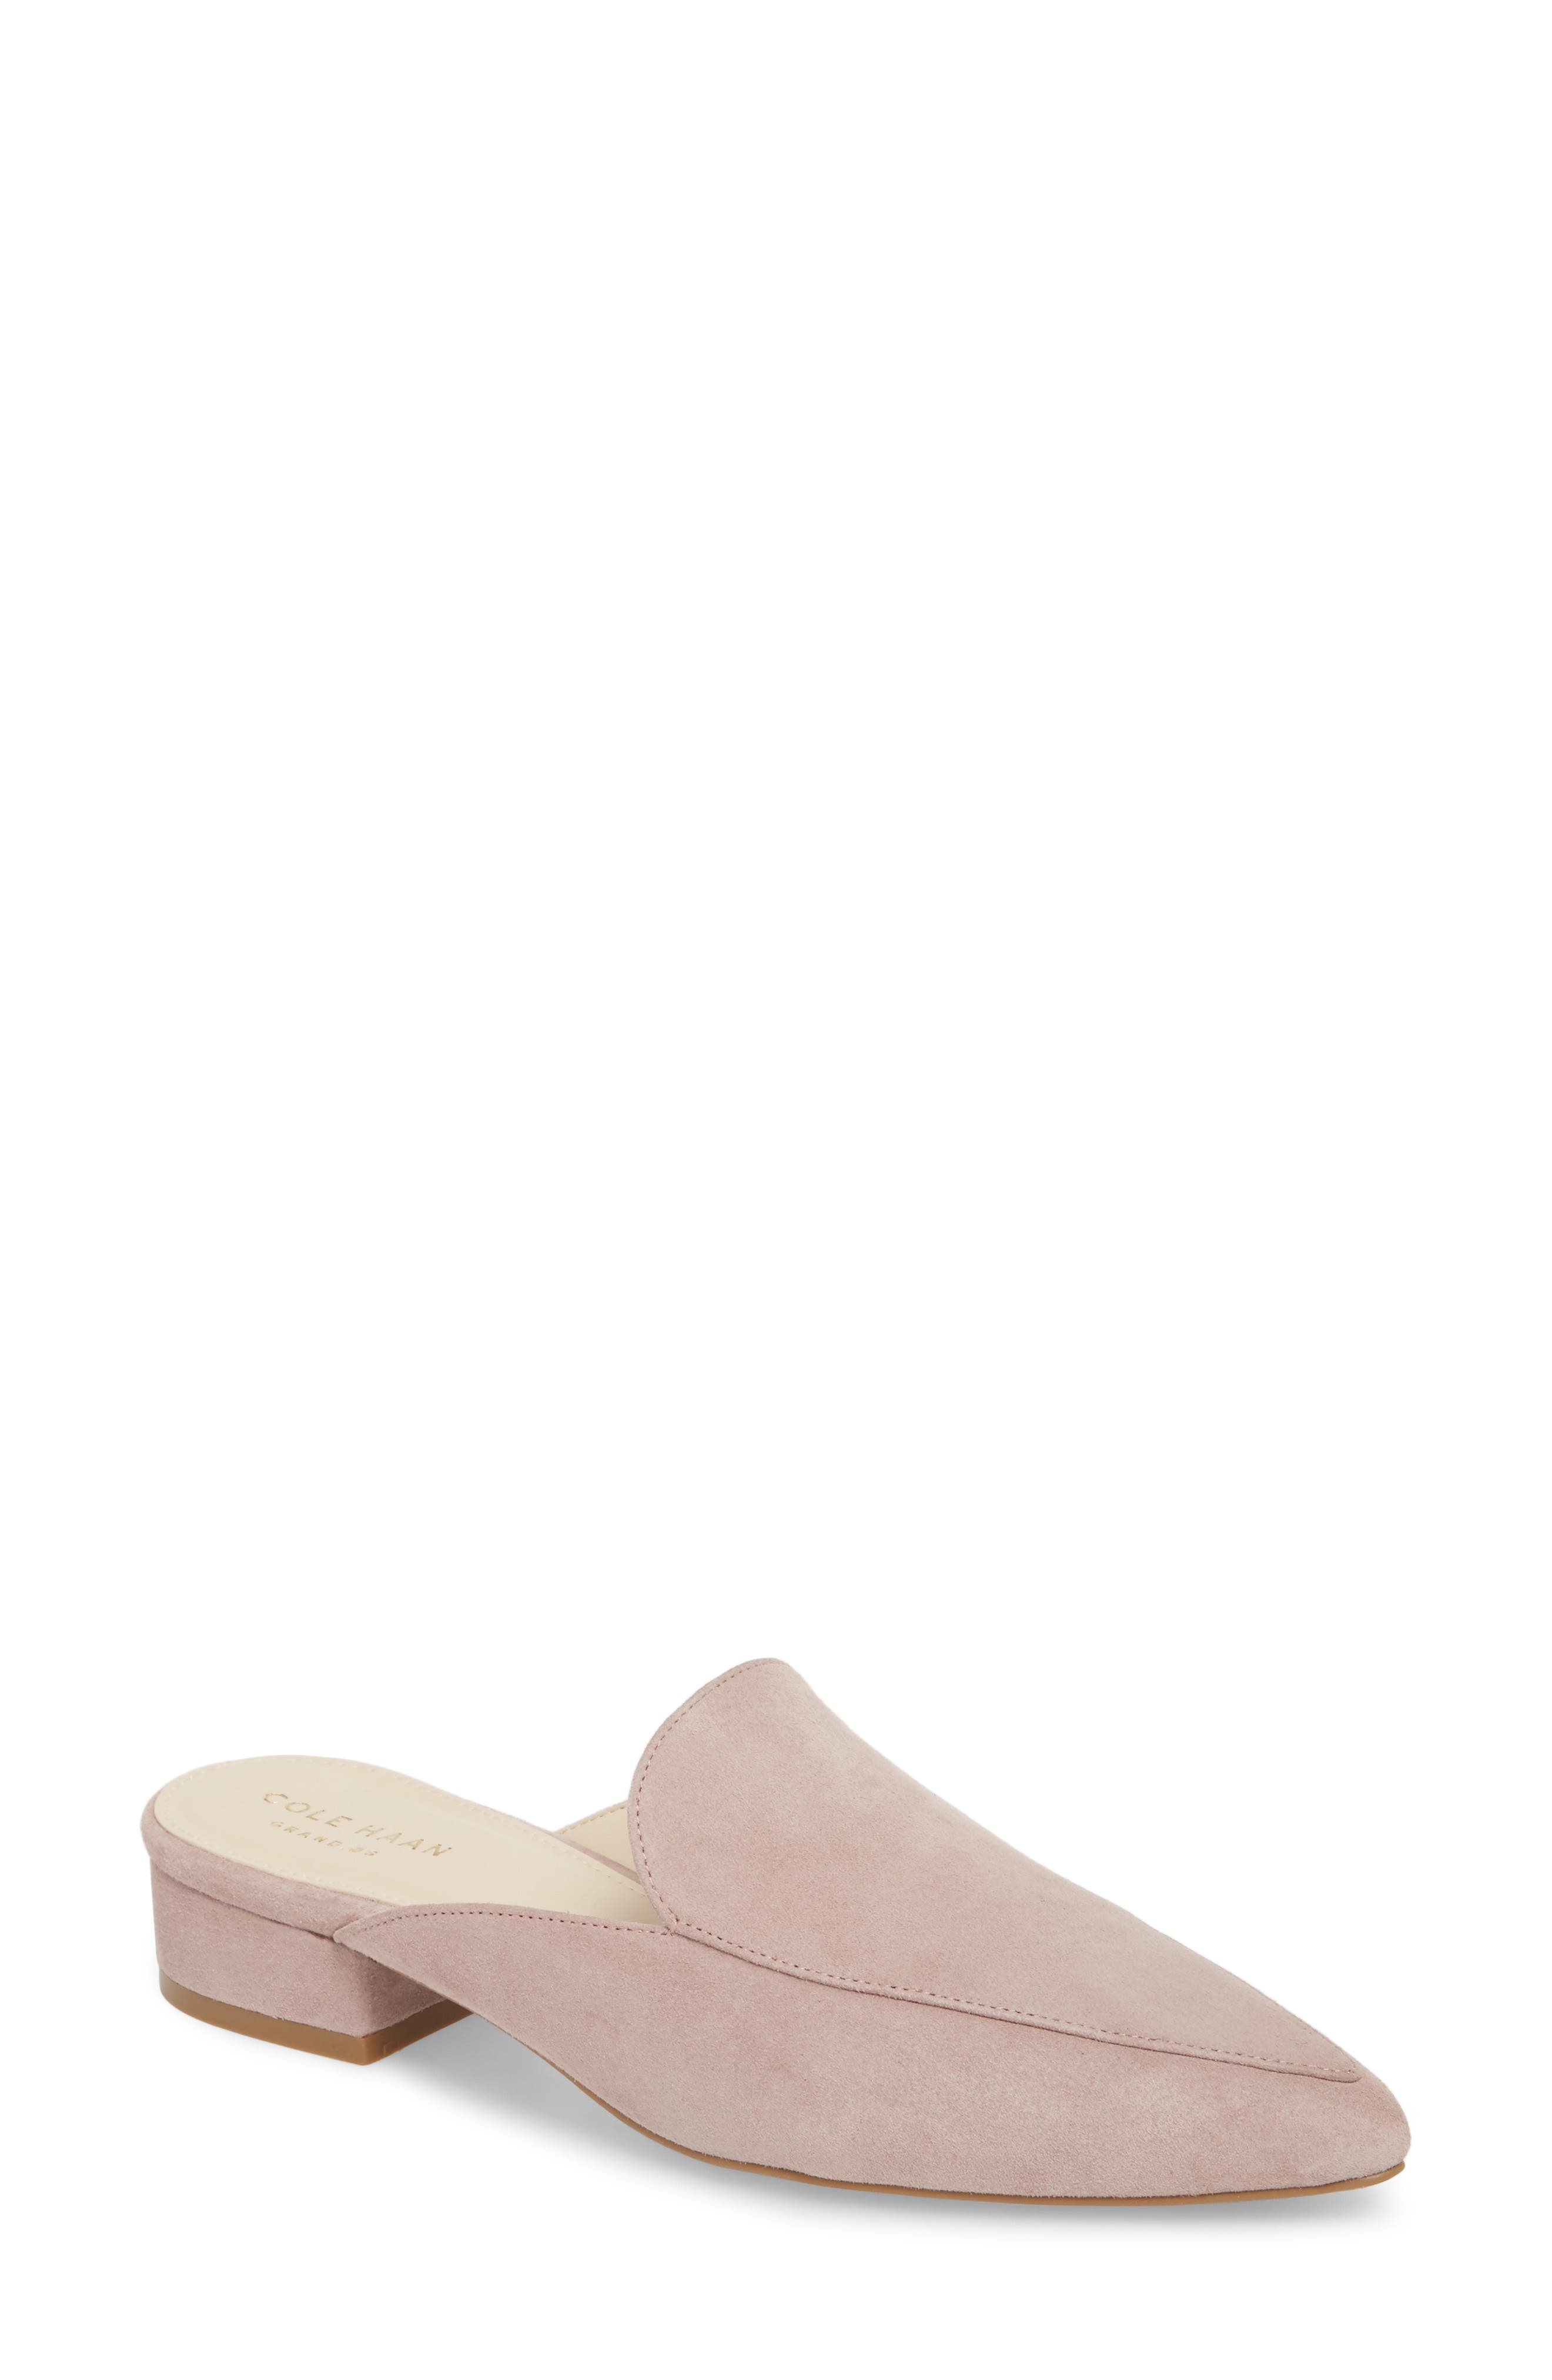 Piper Loafer Mule,                             Main thumbnail 1, color,                             Twilight Mauve Suede